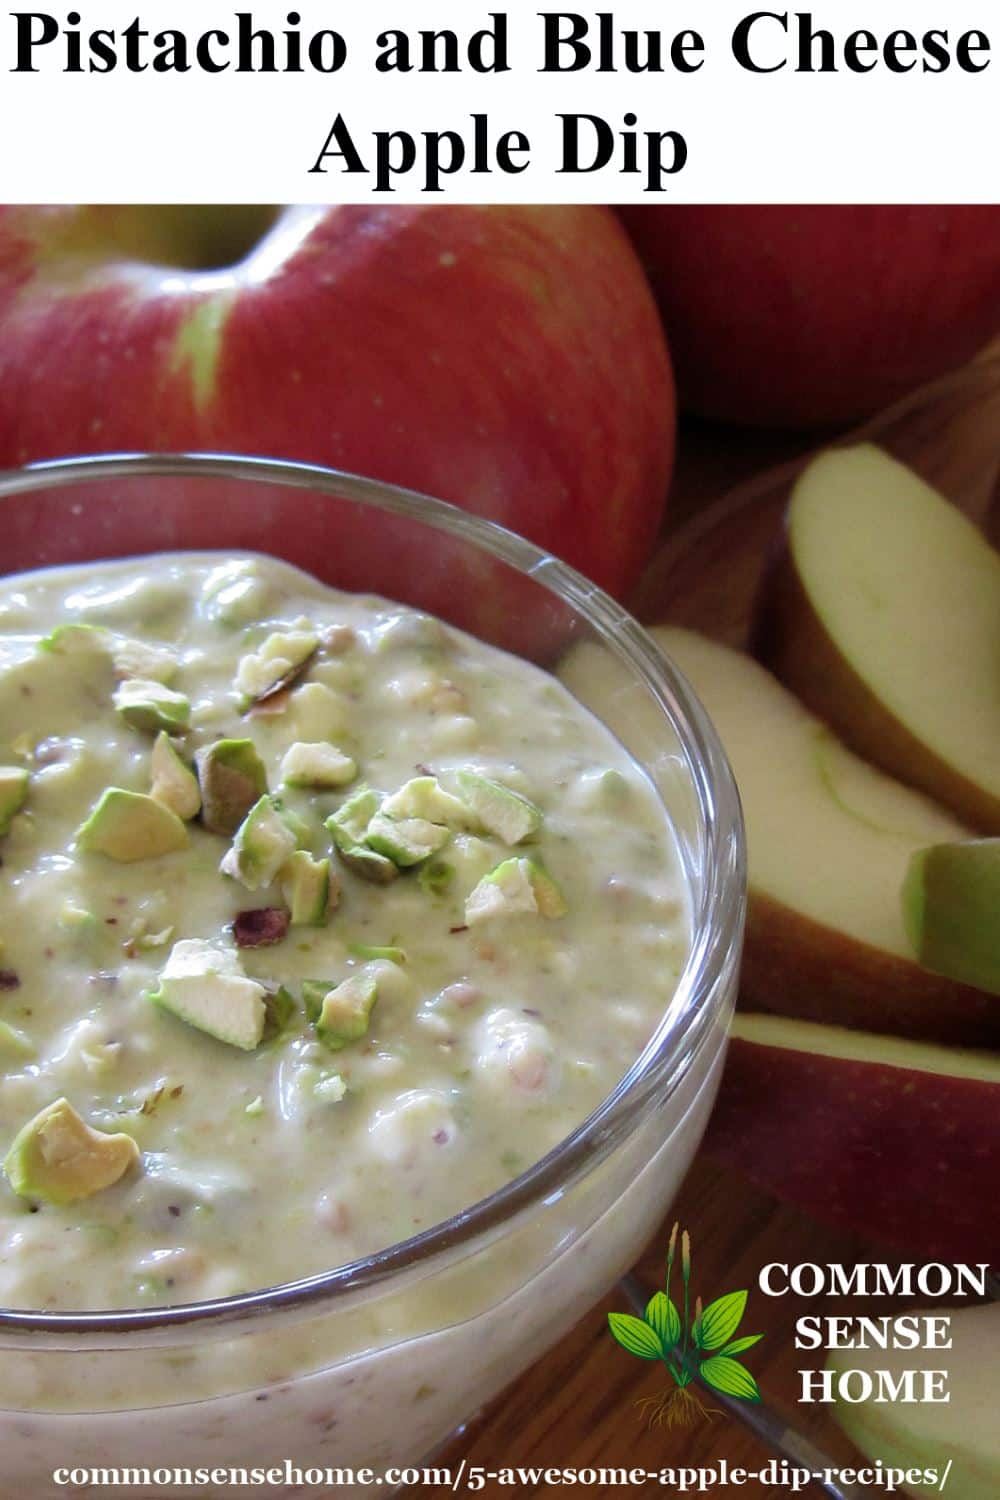 Pistachio and blue cheese apple dip